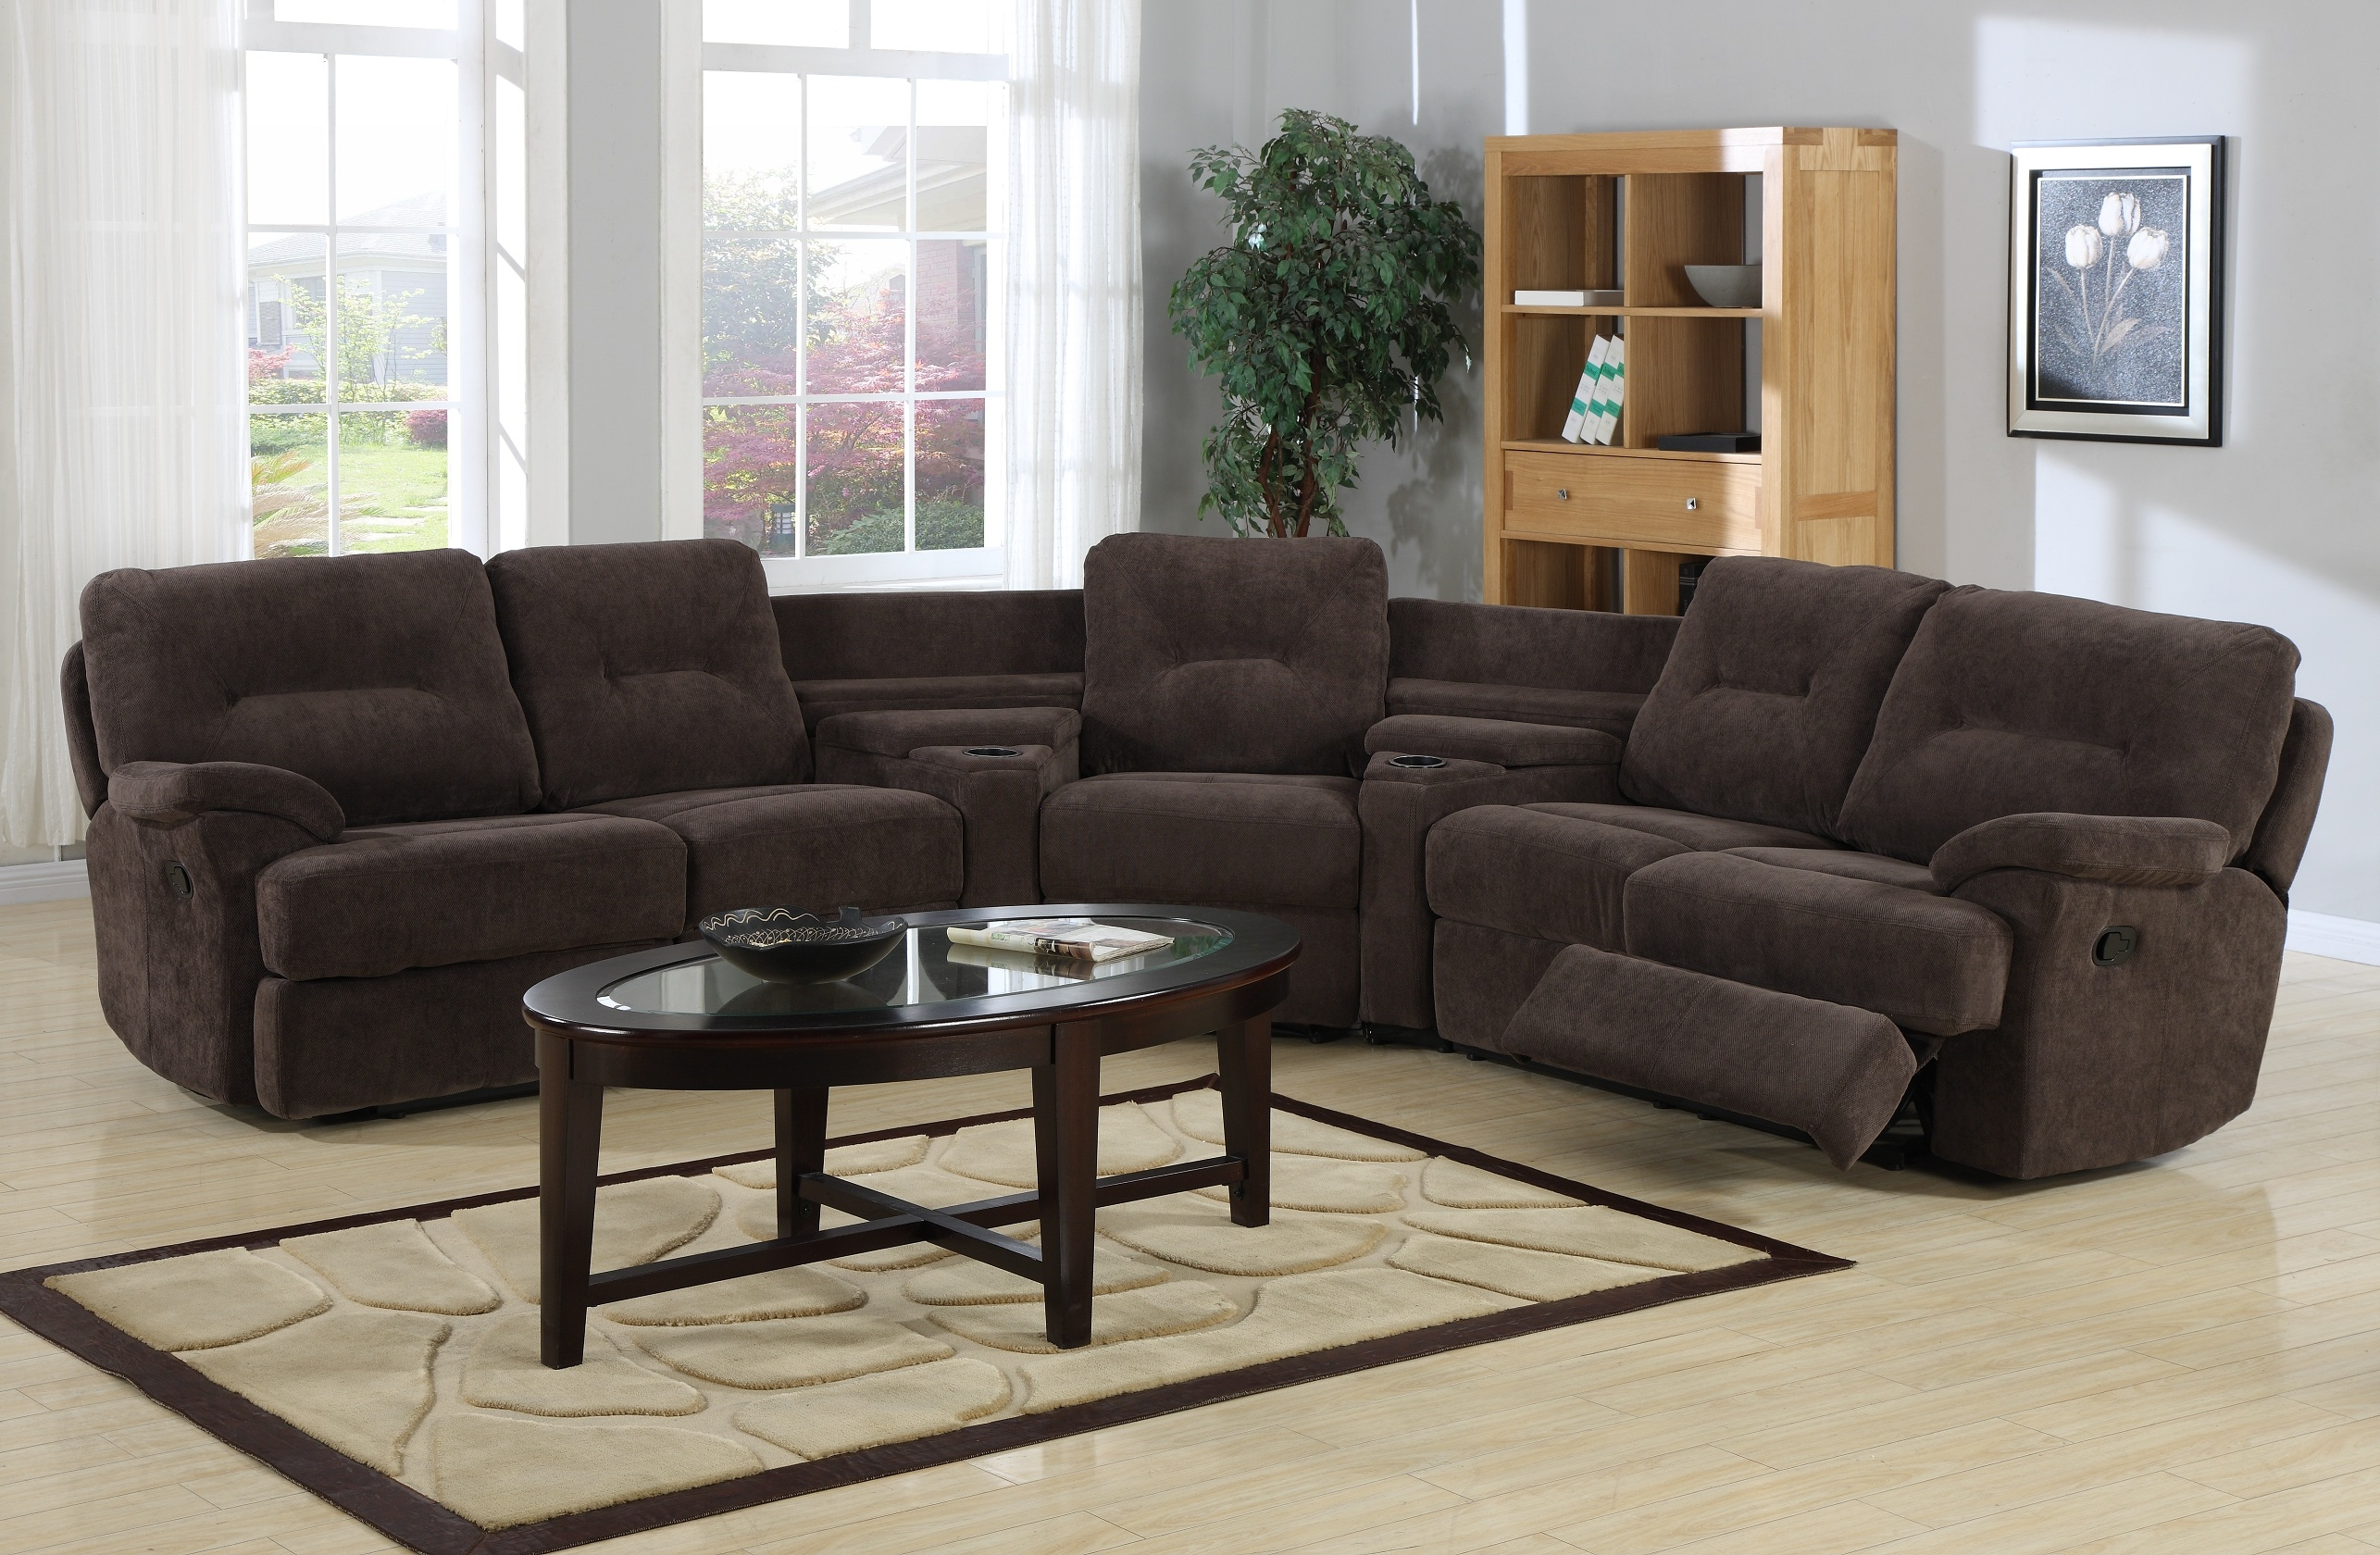 Popular Photo of Curved Sectional Sofa With Recliner